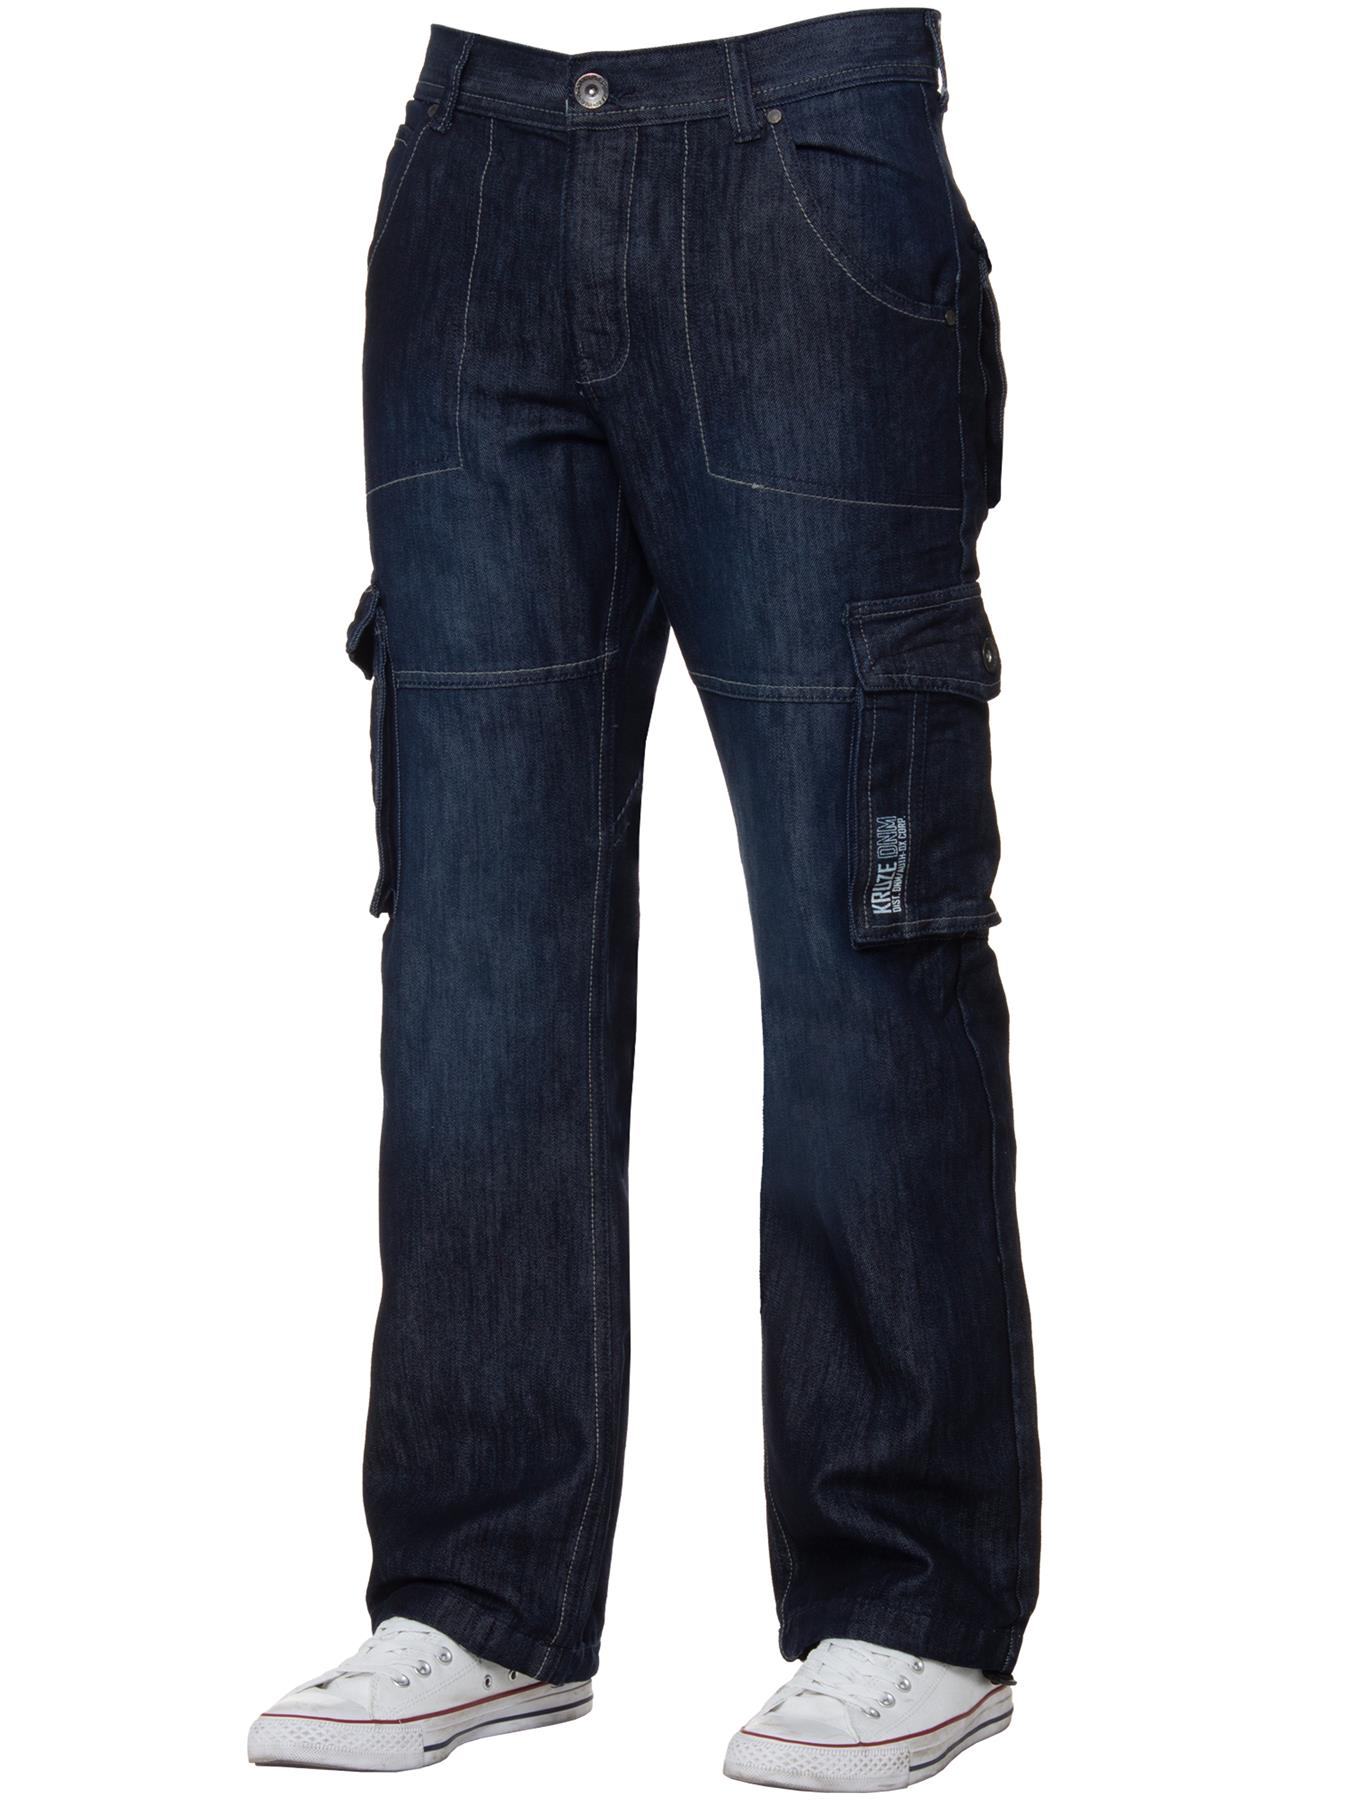 Kruze-Mens-Cargo-Combat-Jeans-Casual-Work-Denim-Pants-Big-Tall-All-Waist-Sizes thumbnail 22